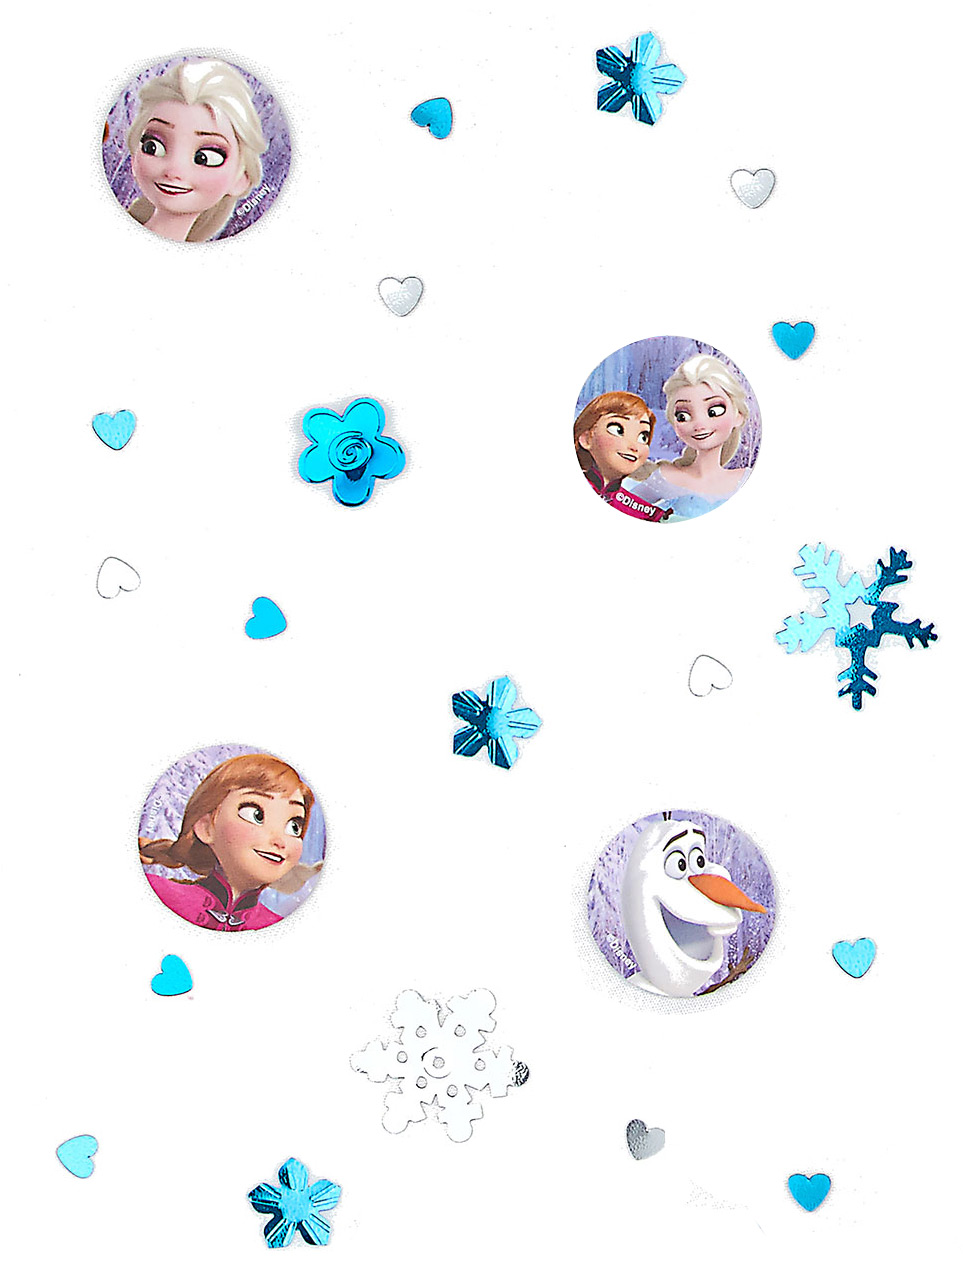 disney frozen konfetti party deko blau bunt 34g g nstige. Black Bedroom Furniture Sets. Home Design Ideas